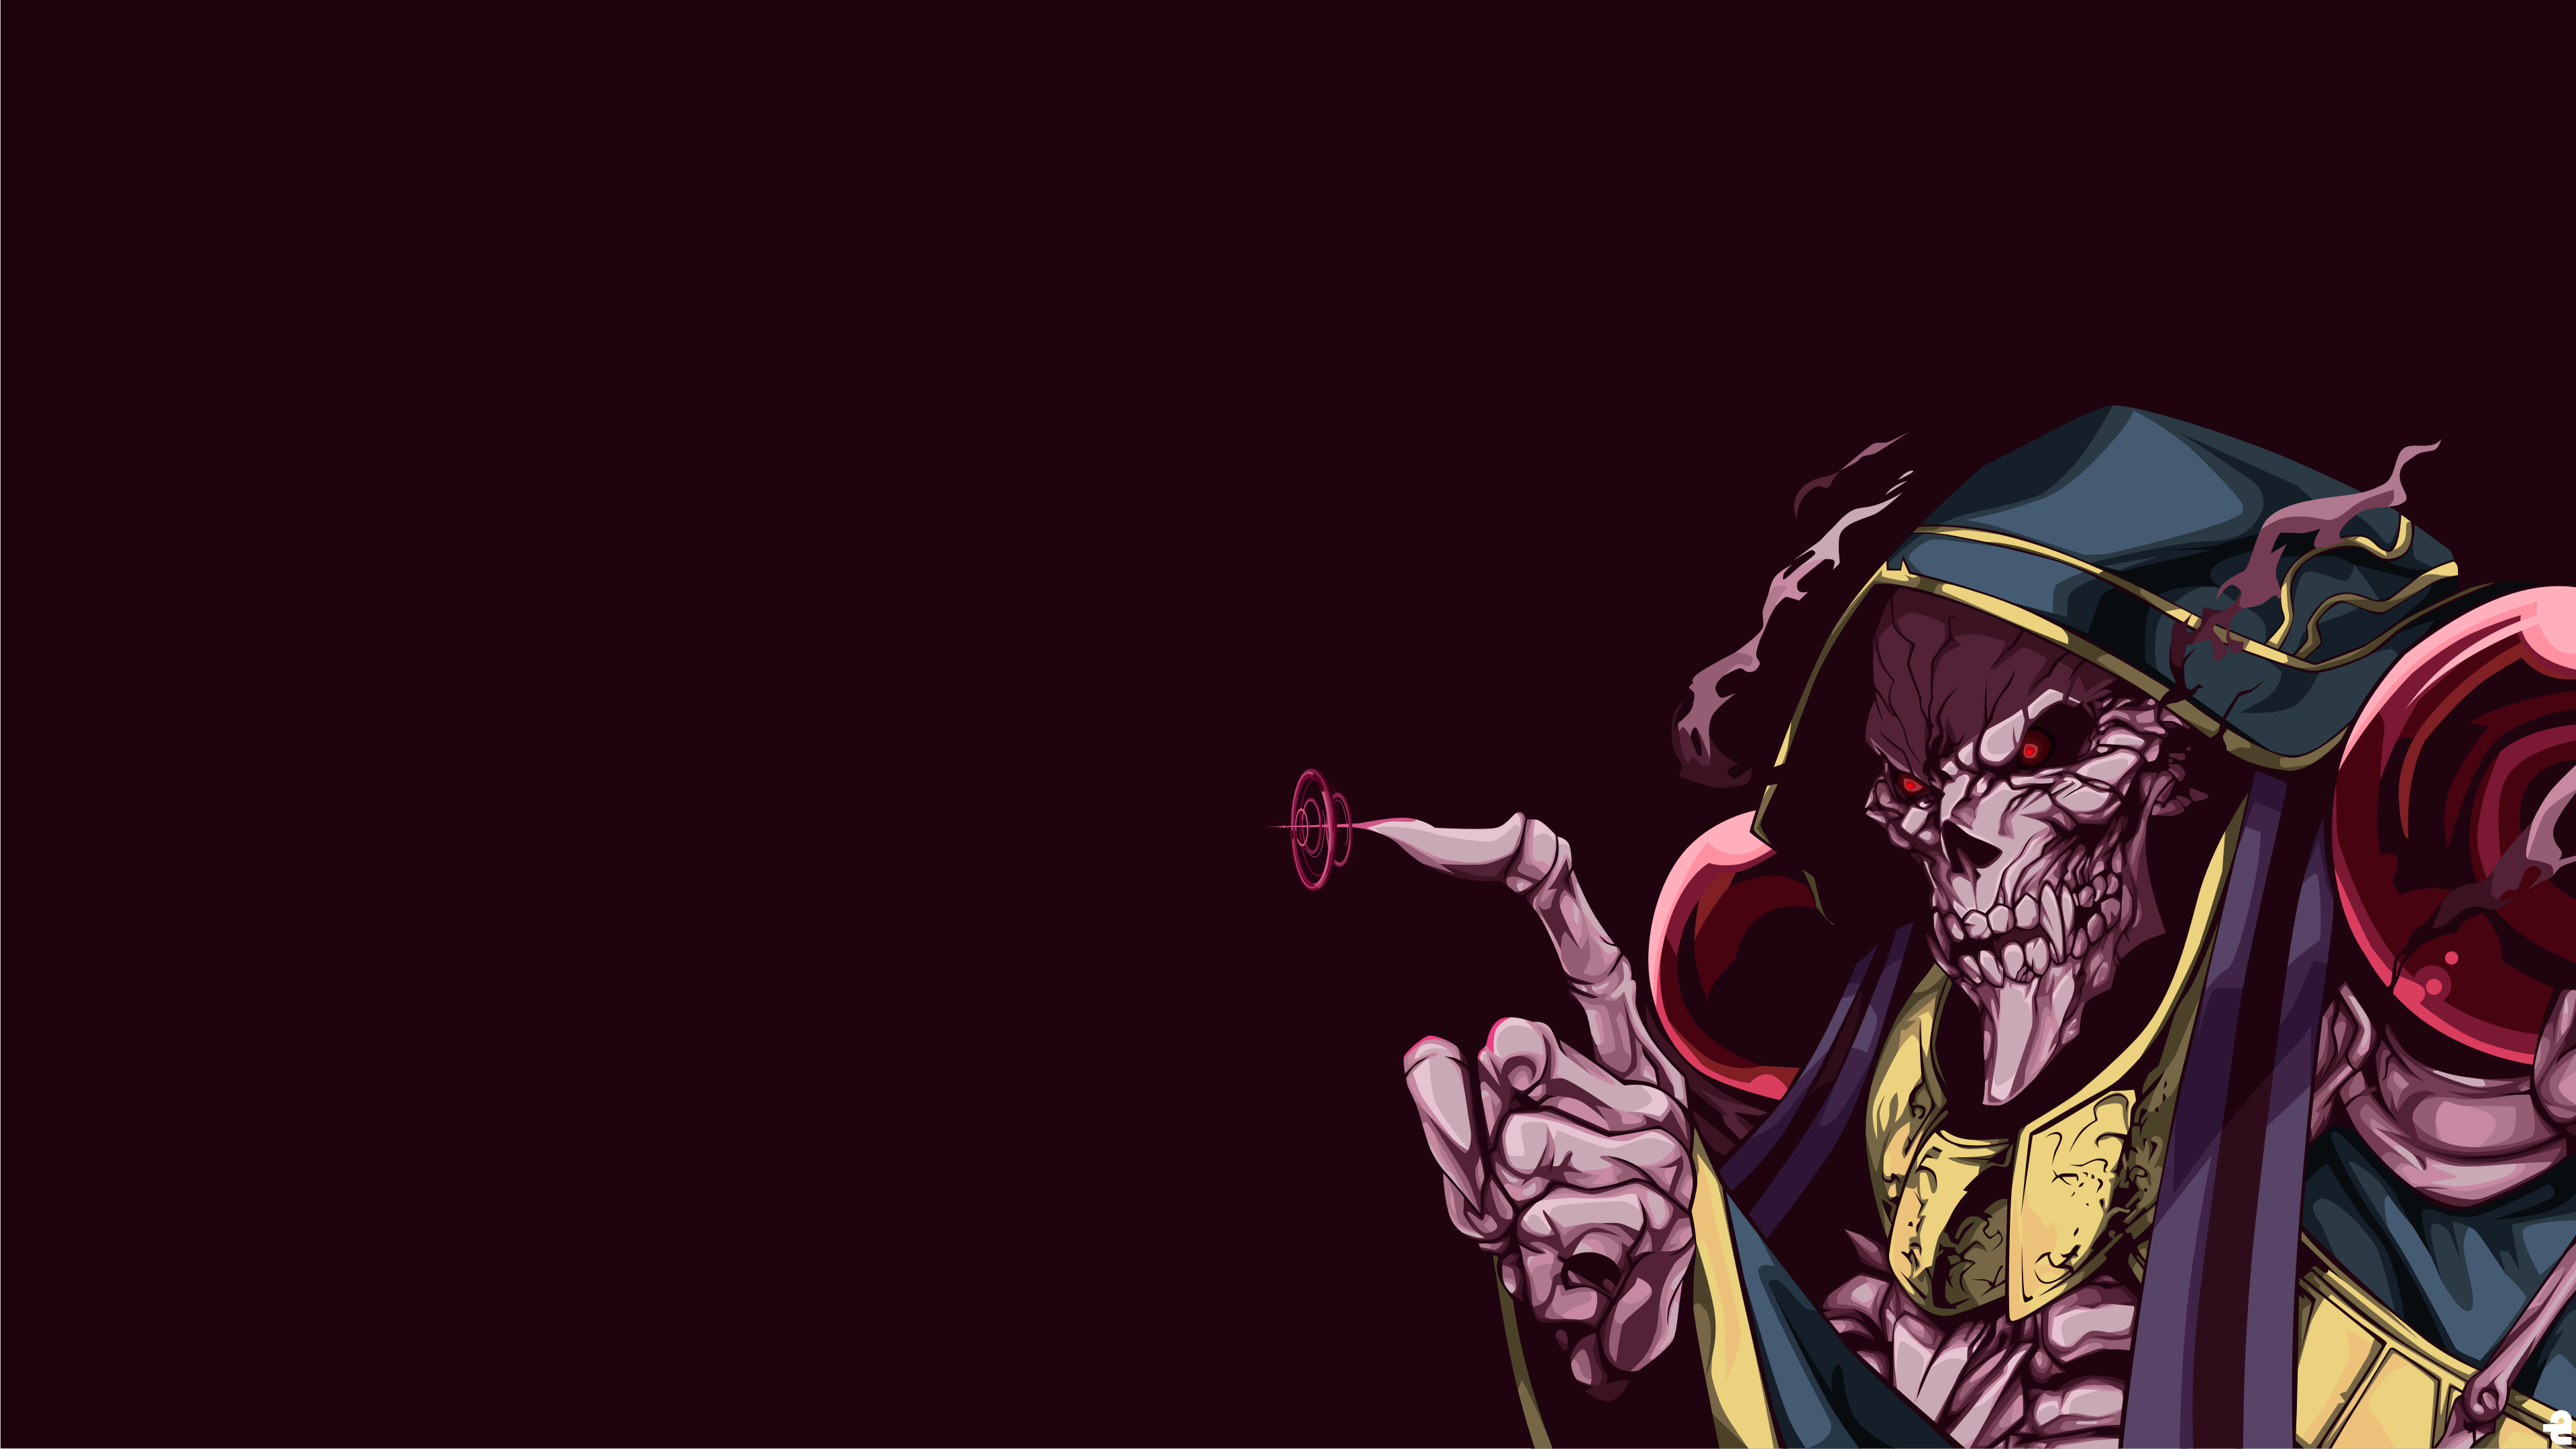 Ainz Ooal Gown Overload Anime 4k Hd Anime 4k Wallpapers Images Backgrounds Photos And Pictures